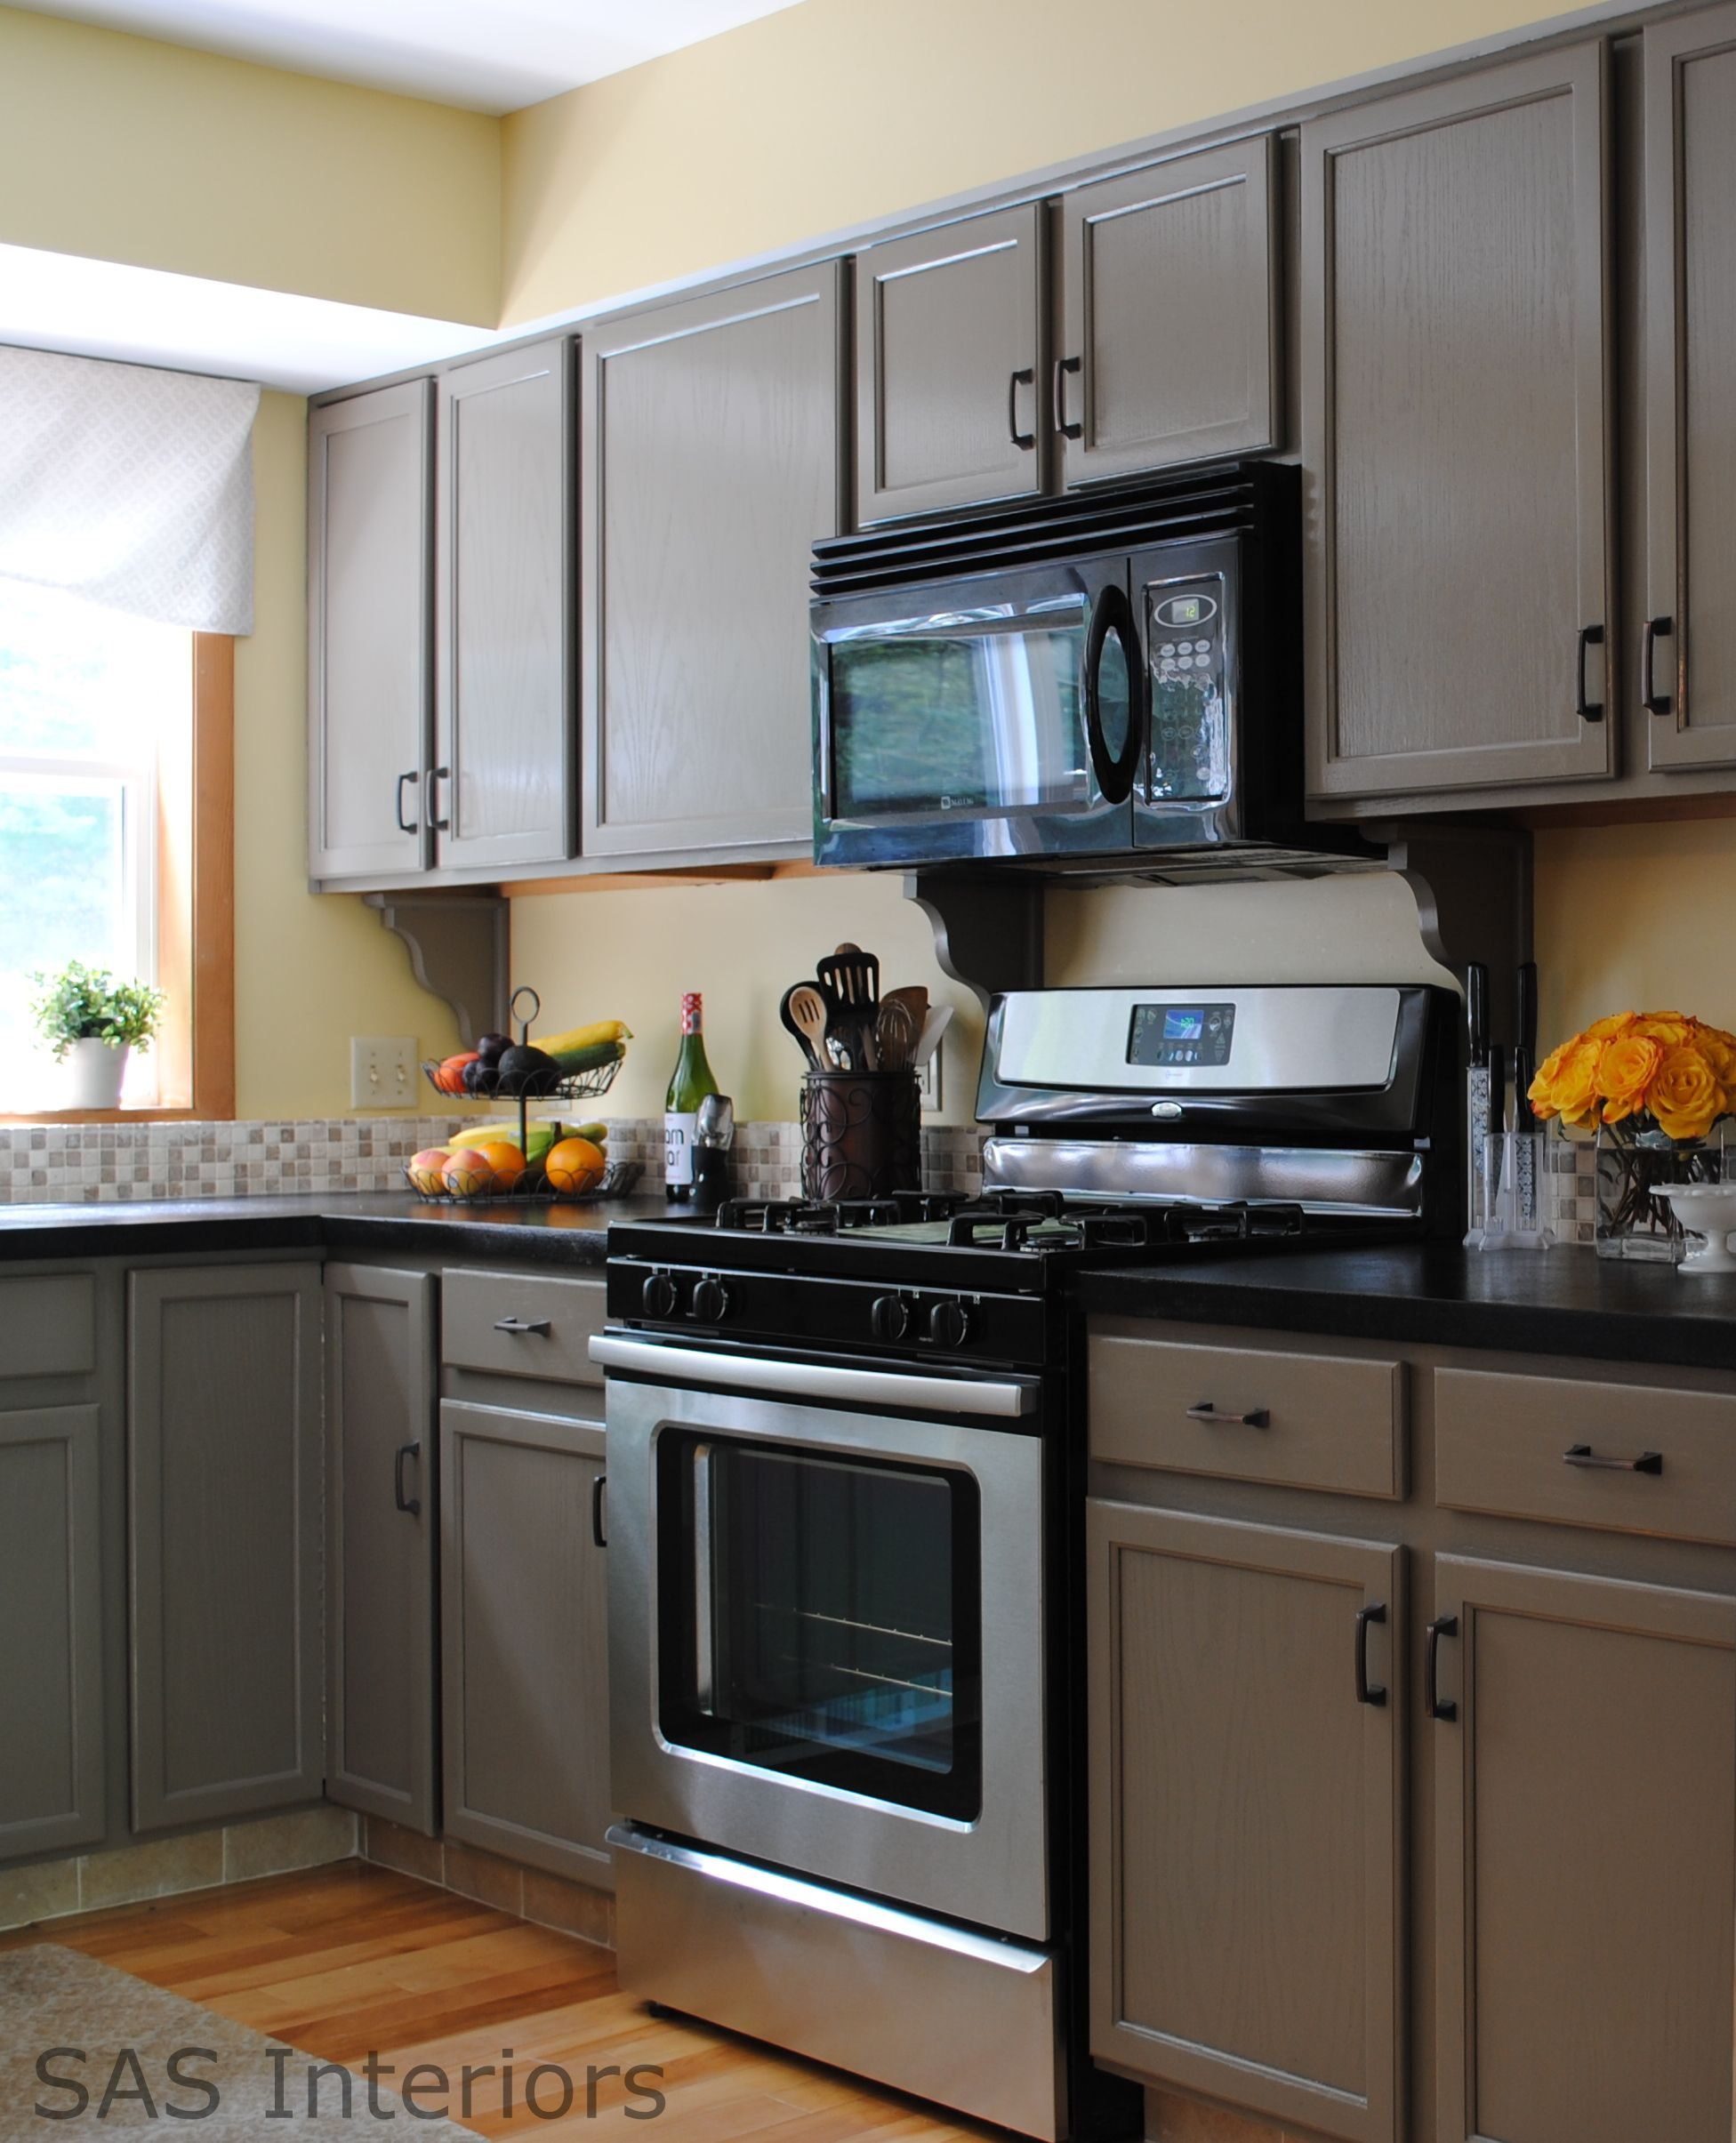 Benjamin Moore Kitchen Cabinet Colors A Complete Do It Yourself Kitchen Makeover Using Benjamin